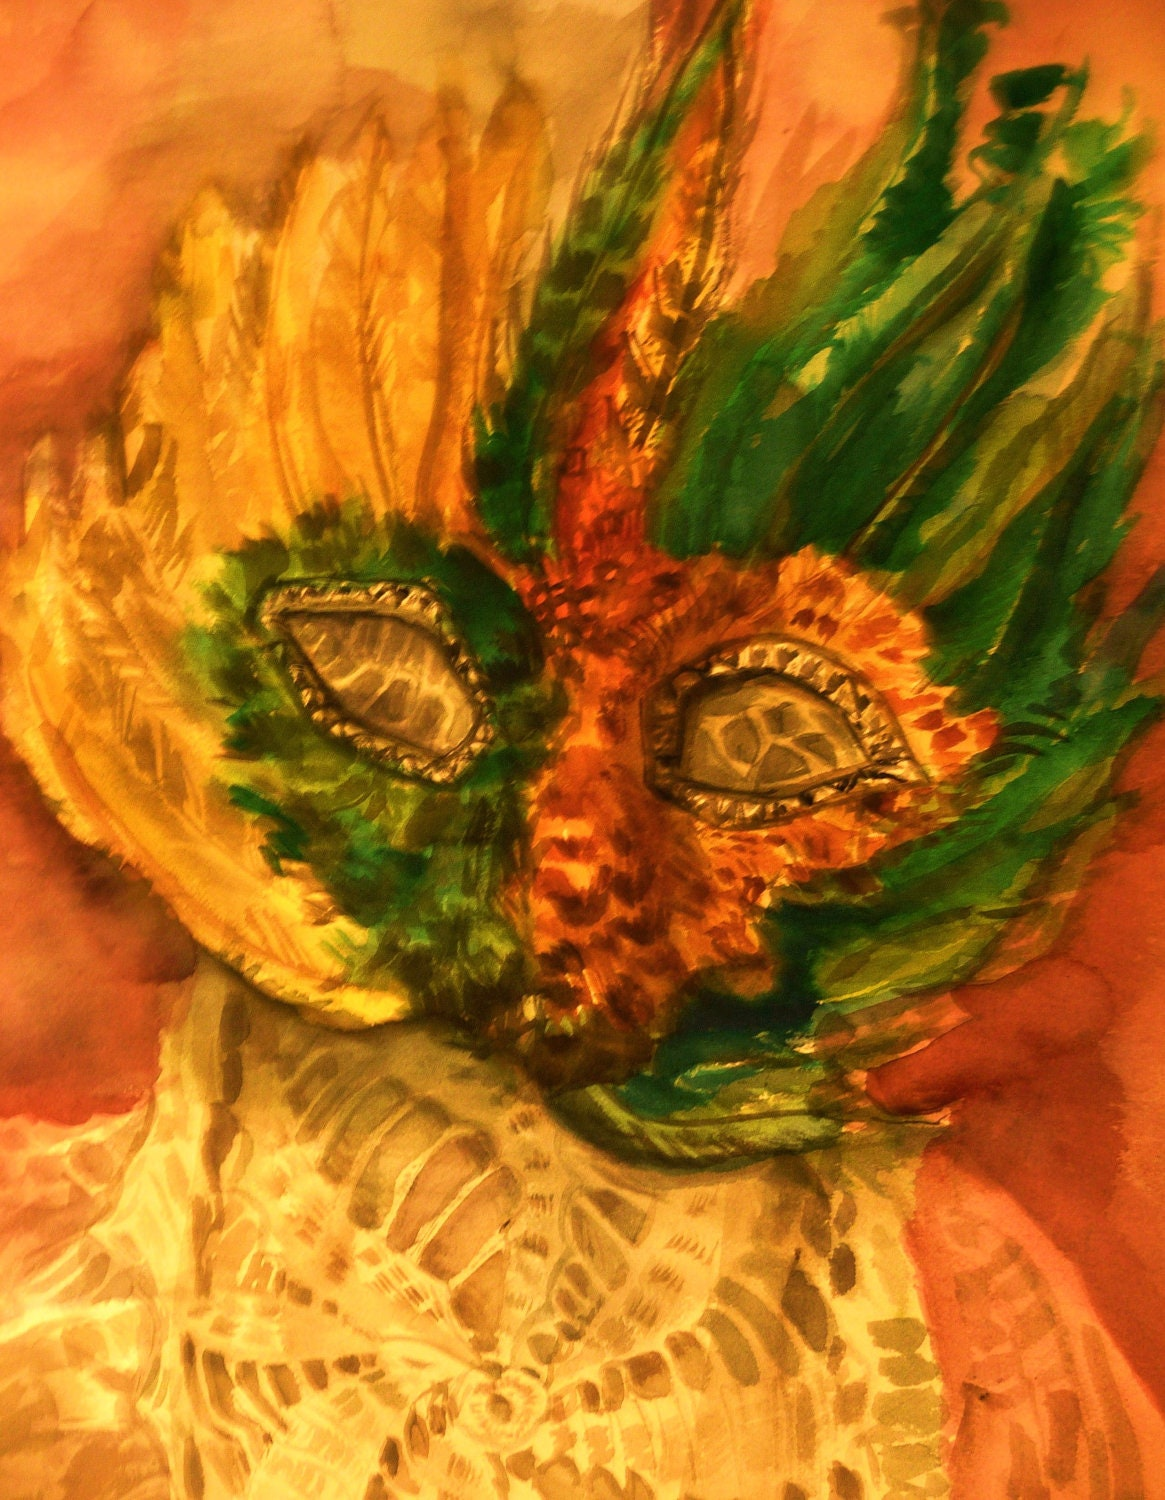 Mardi Gras Mask, Original Watercolor, Original Painting, Mardi Gras, Large Watercolor Painting, New Orleans, masks